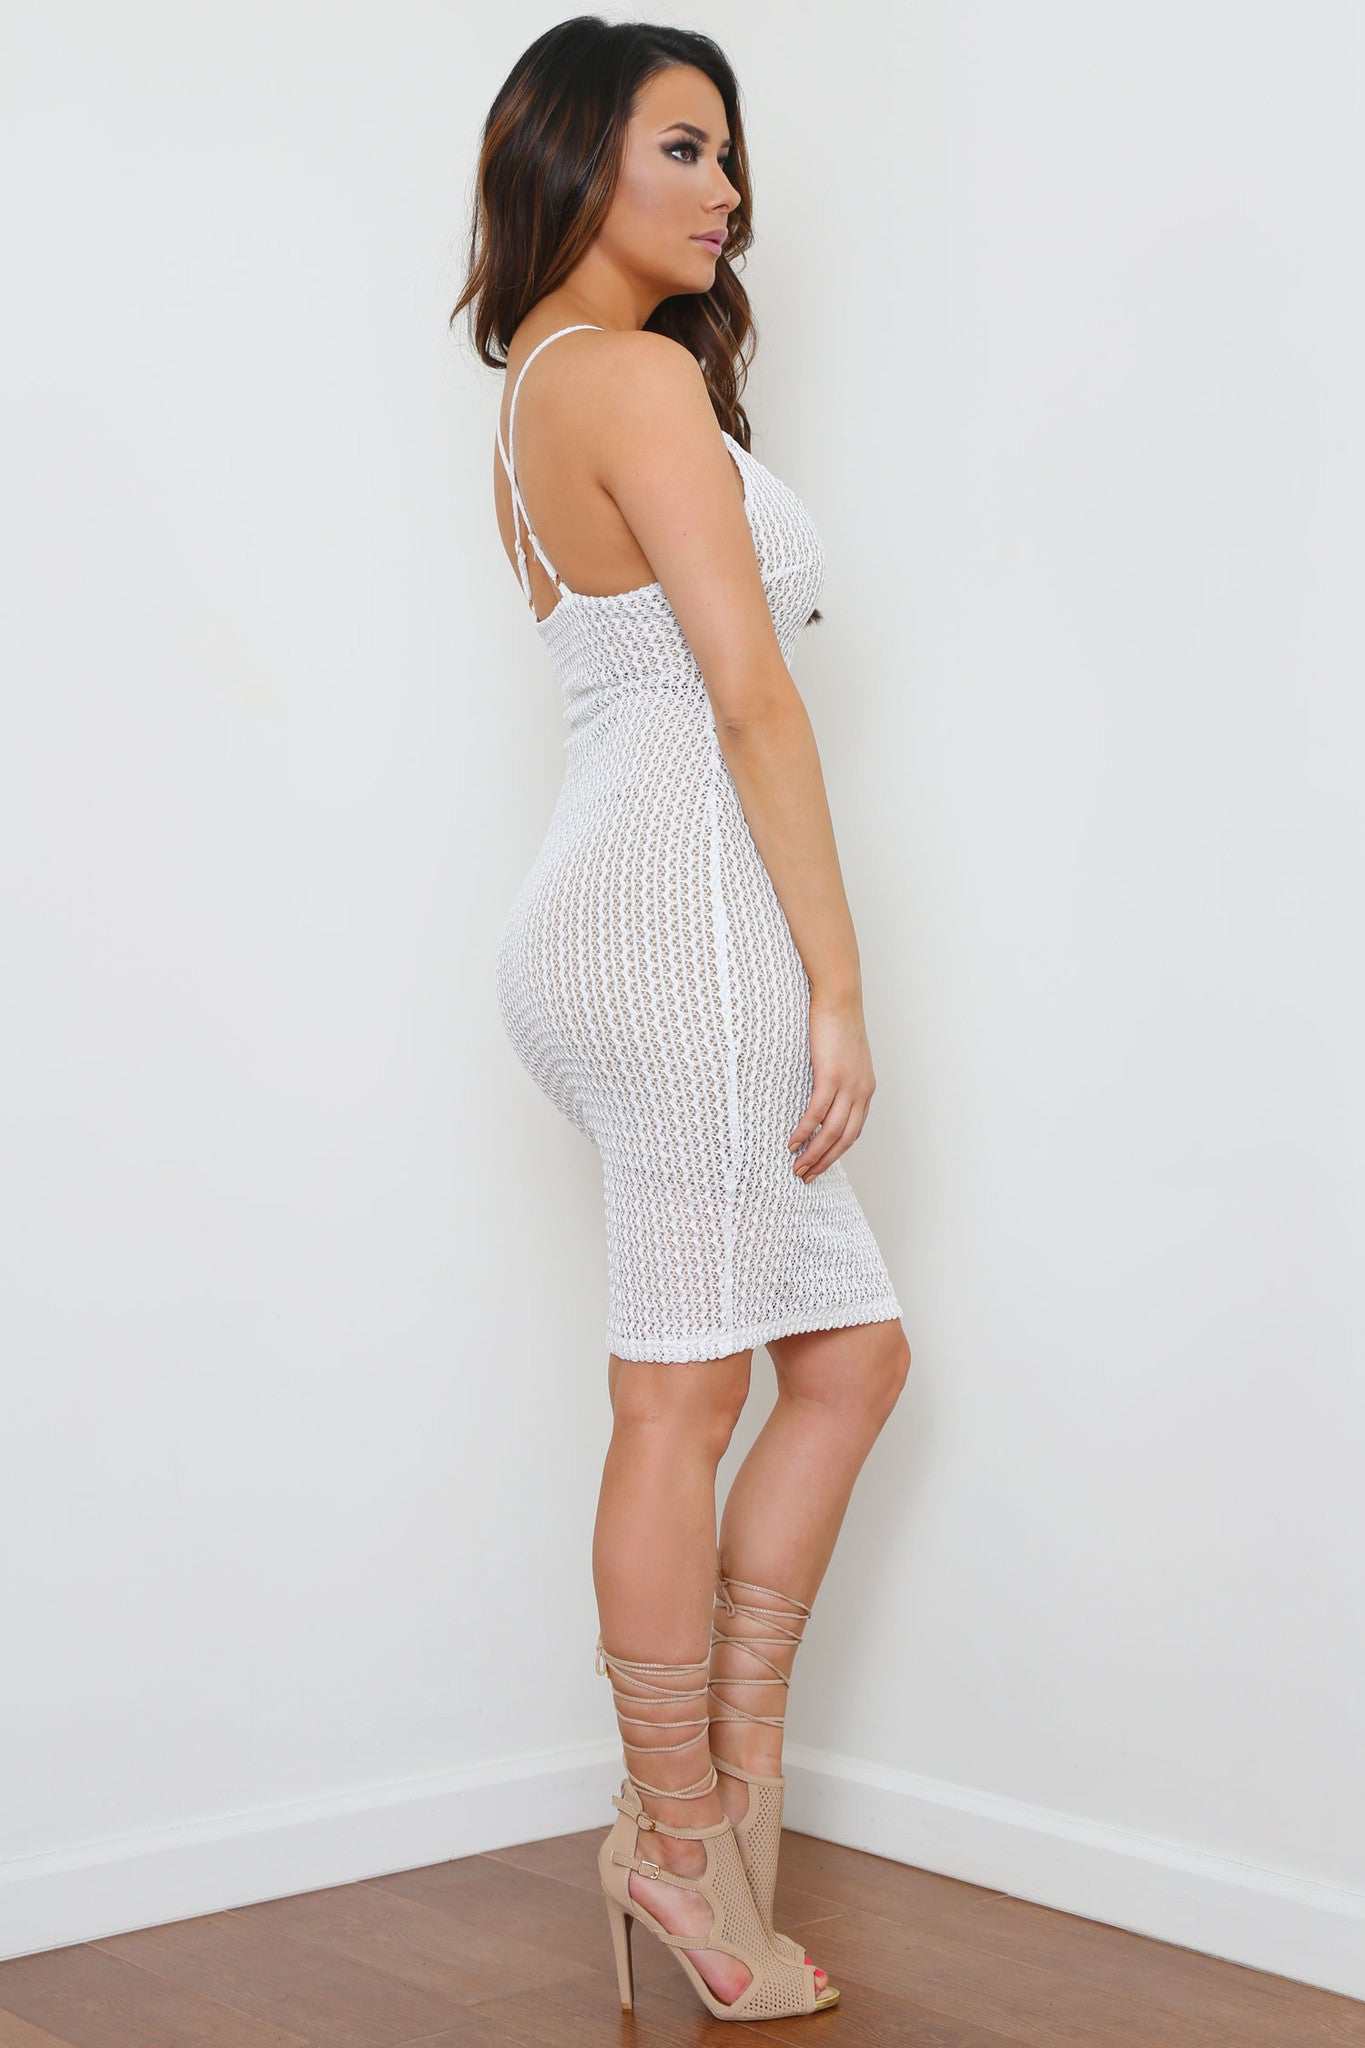 KRISTINA DRESS - Glam Envy - 2